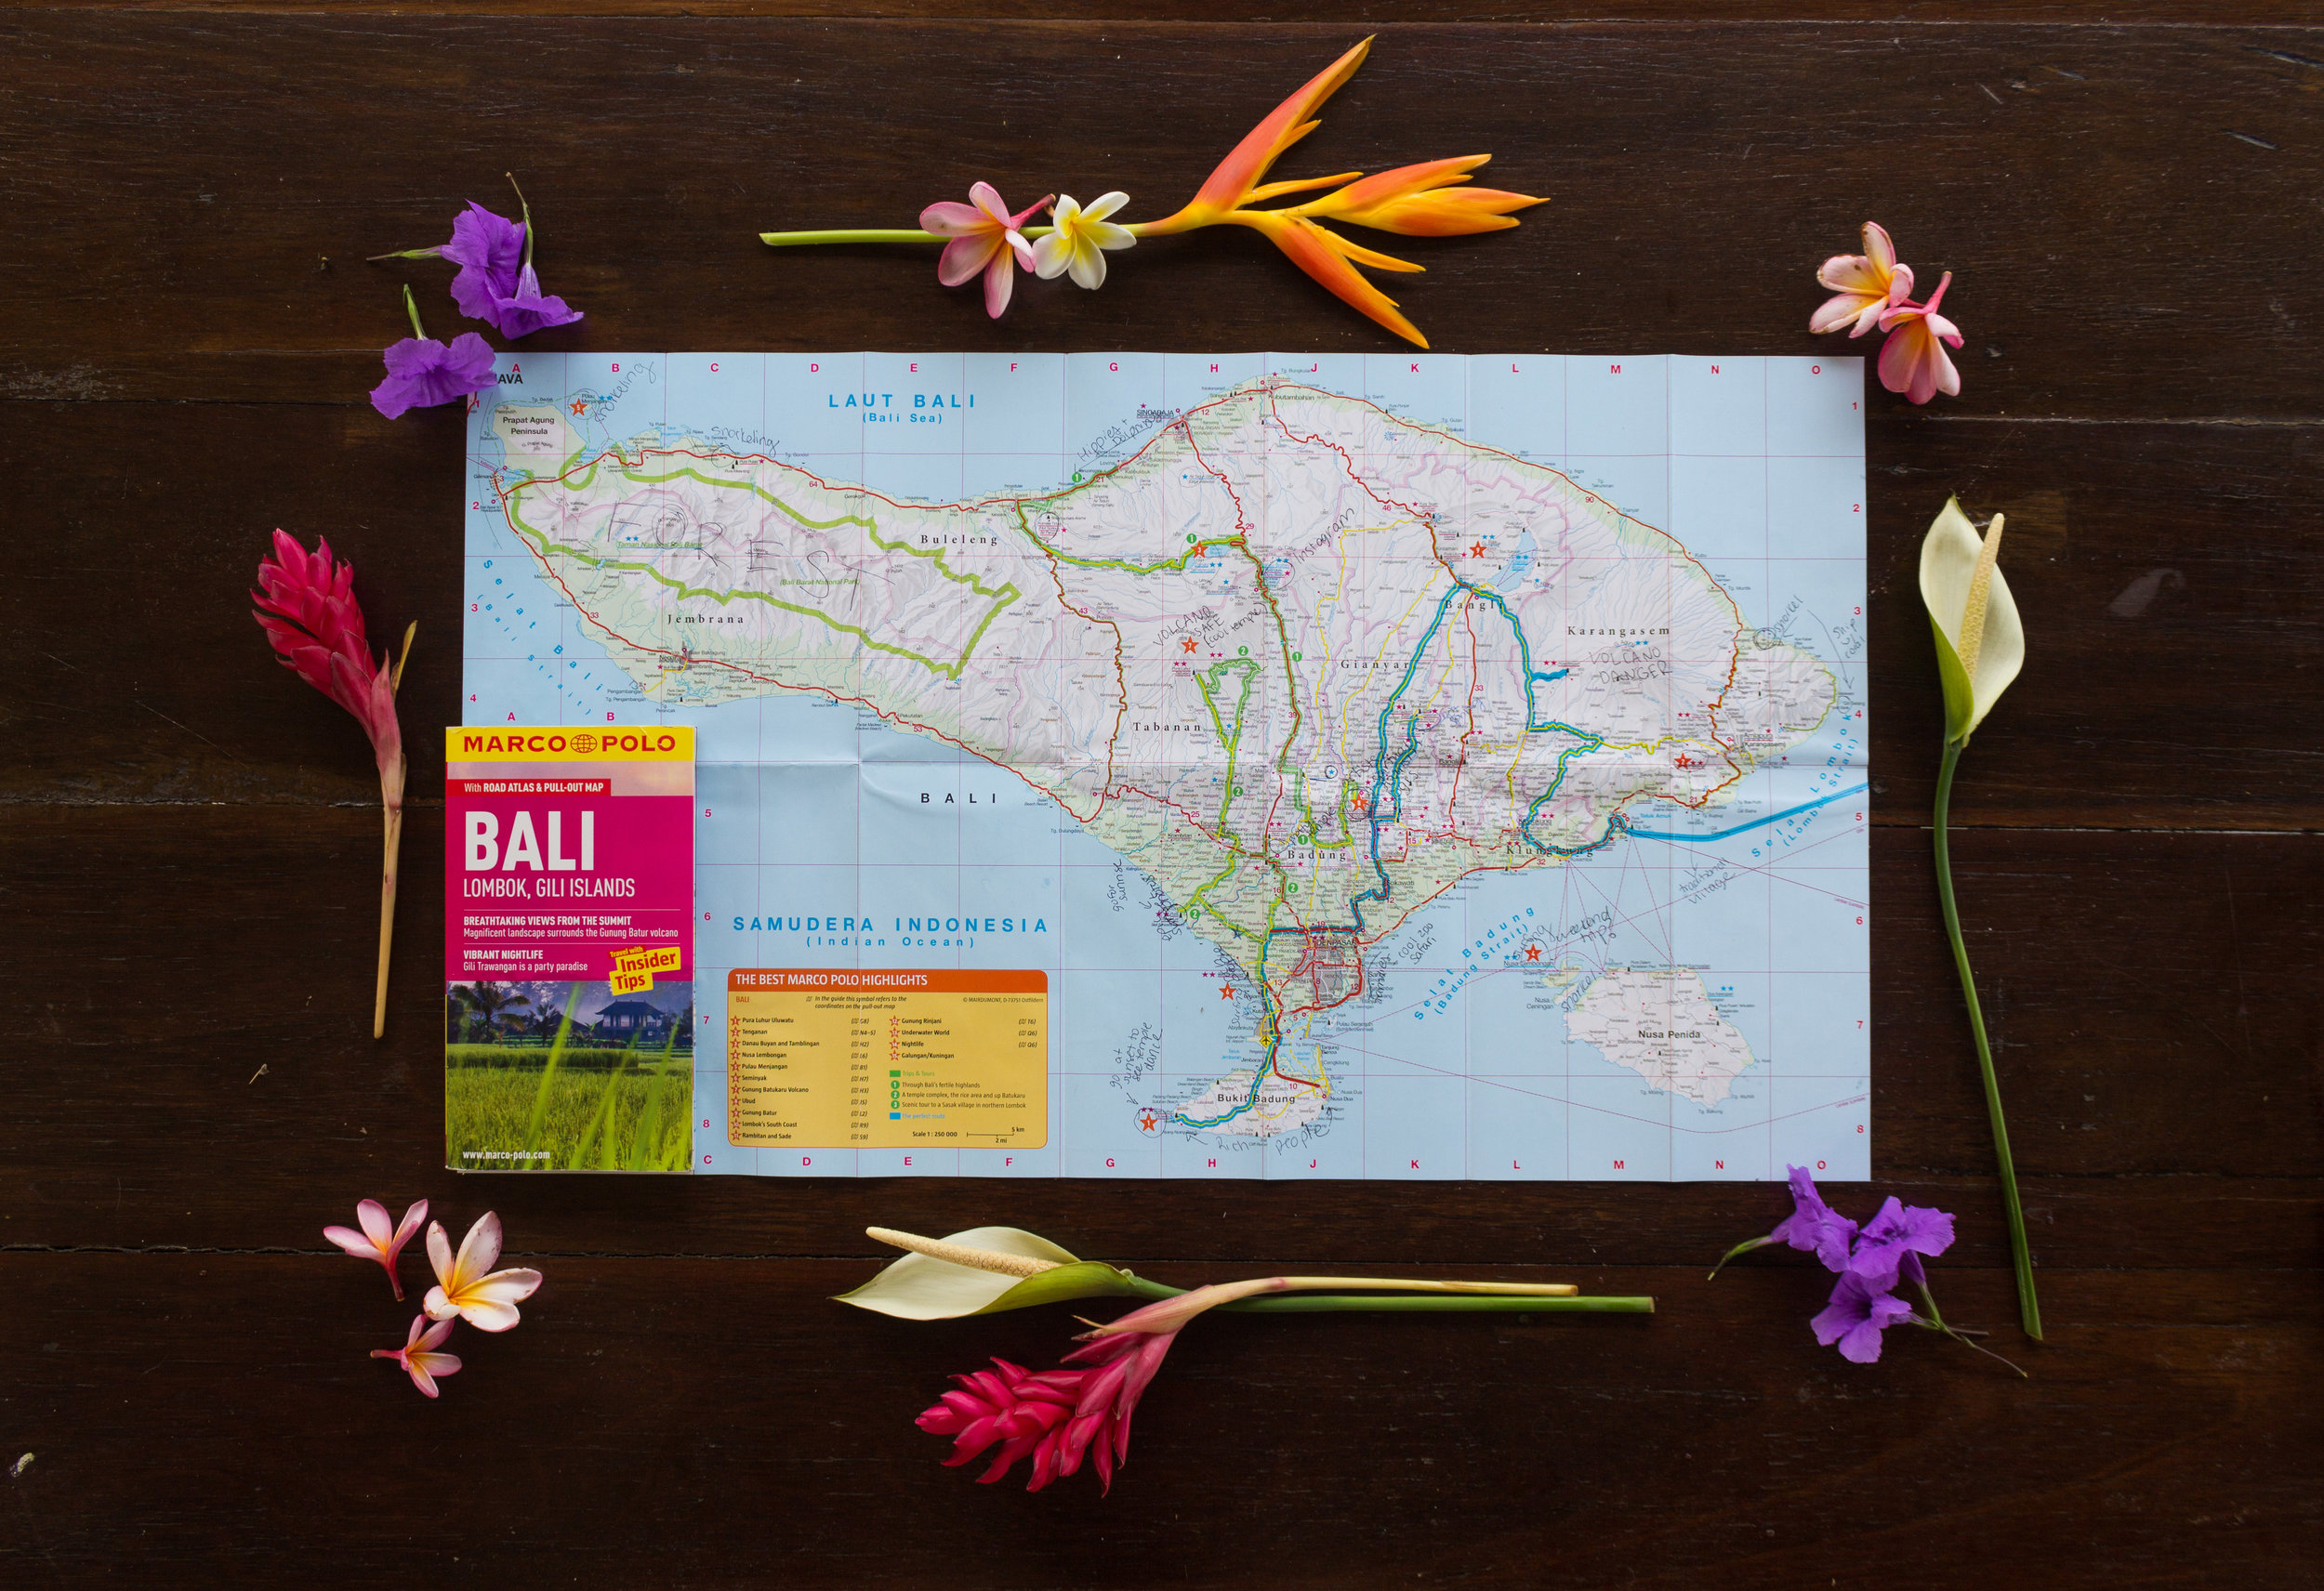 Marco Polo Bali comes with a great pull out map